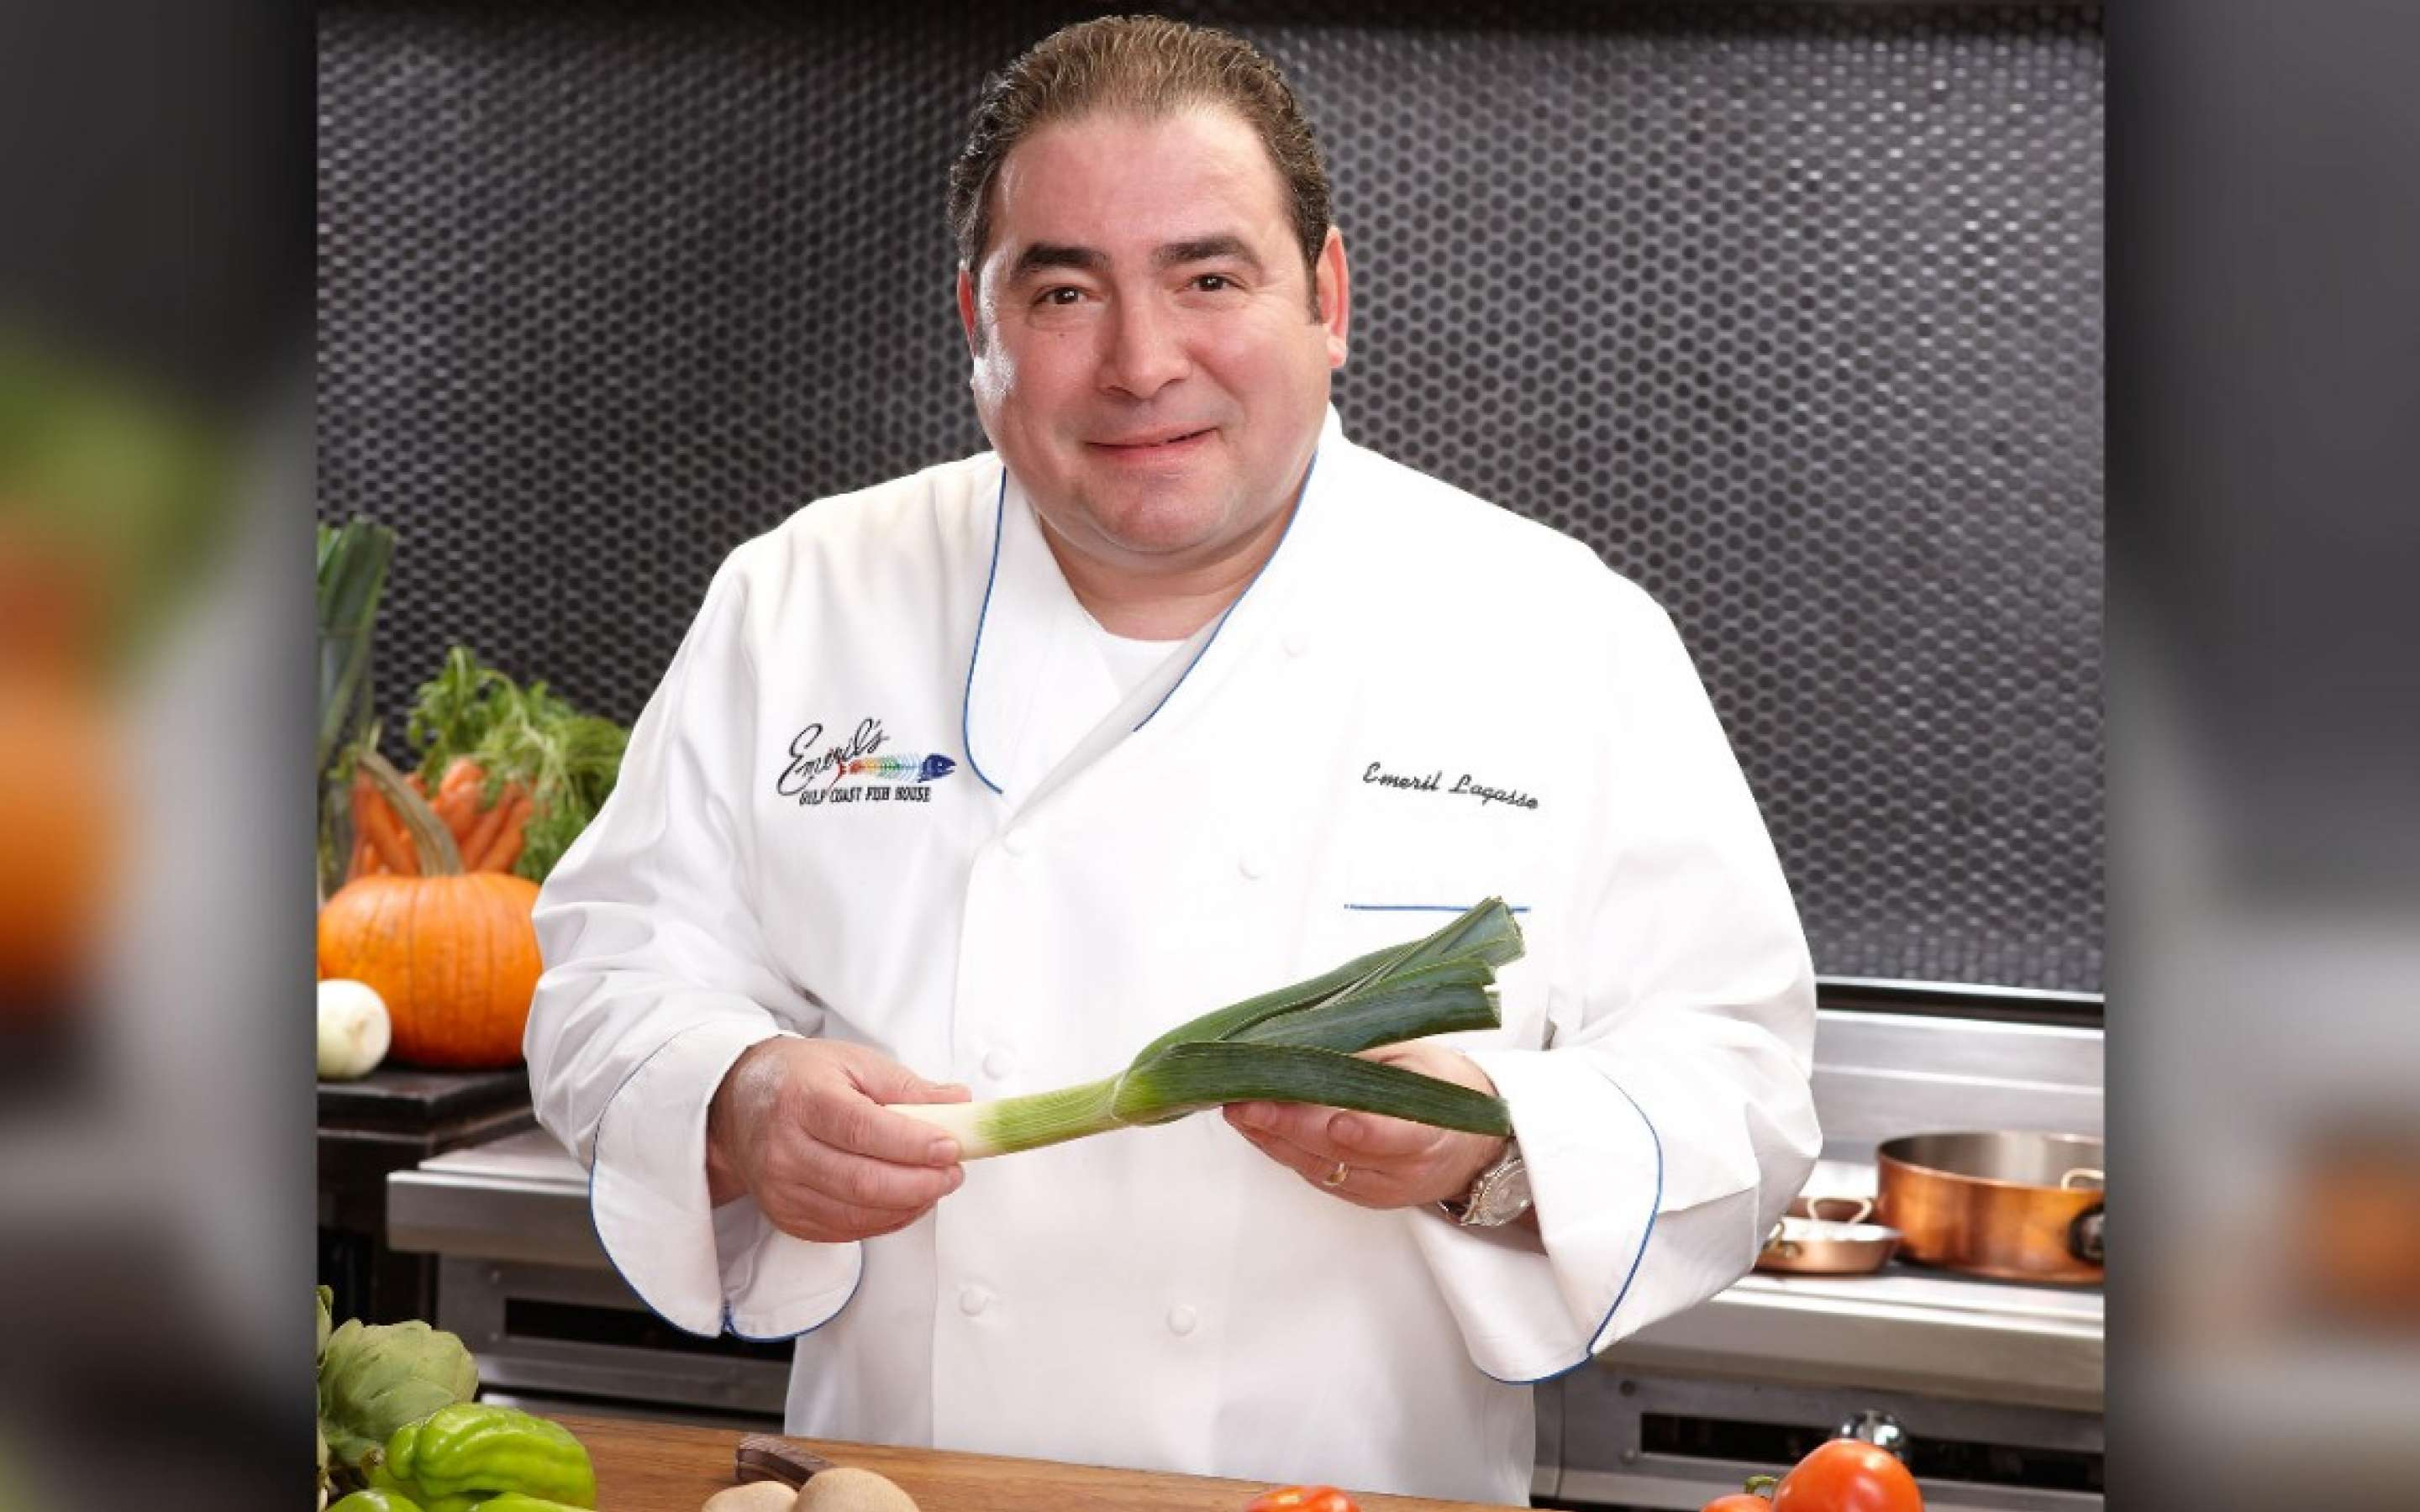 Celebrity Chef Emeril Lagasse